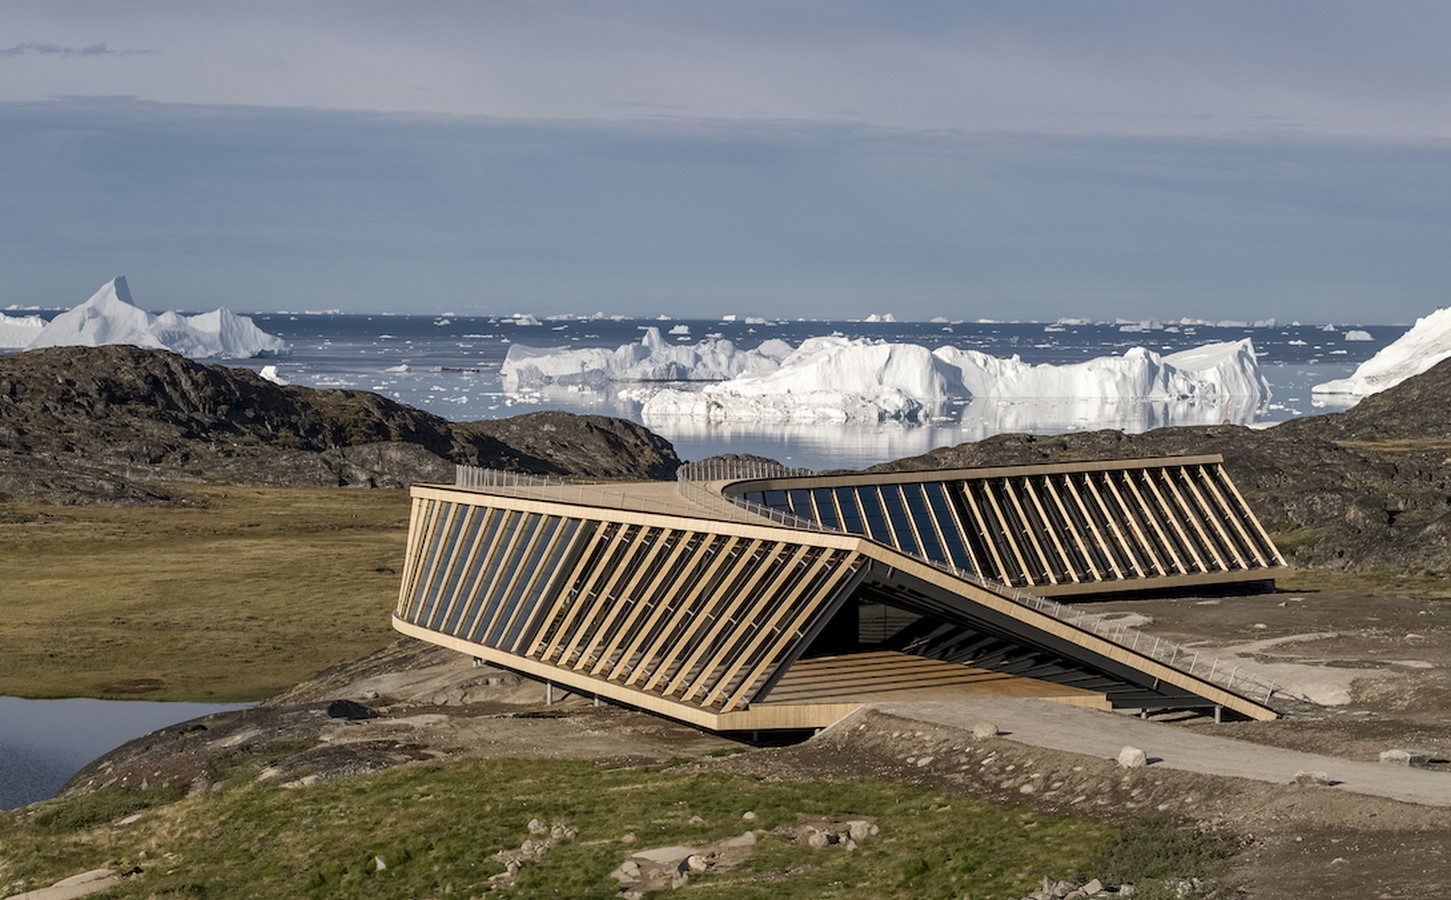 Curved Icefiord Centre In The UNESCO-Protected Area Of Greenland completed by Dorte Mandrup - Sheet4